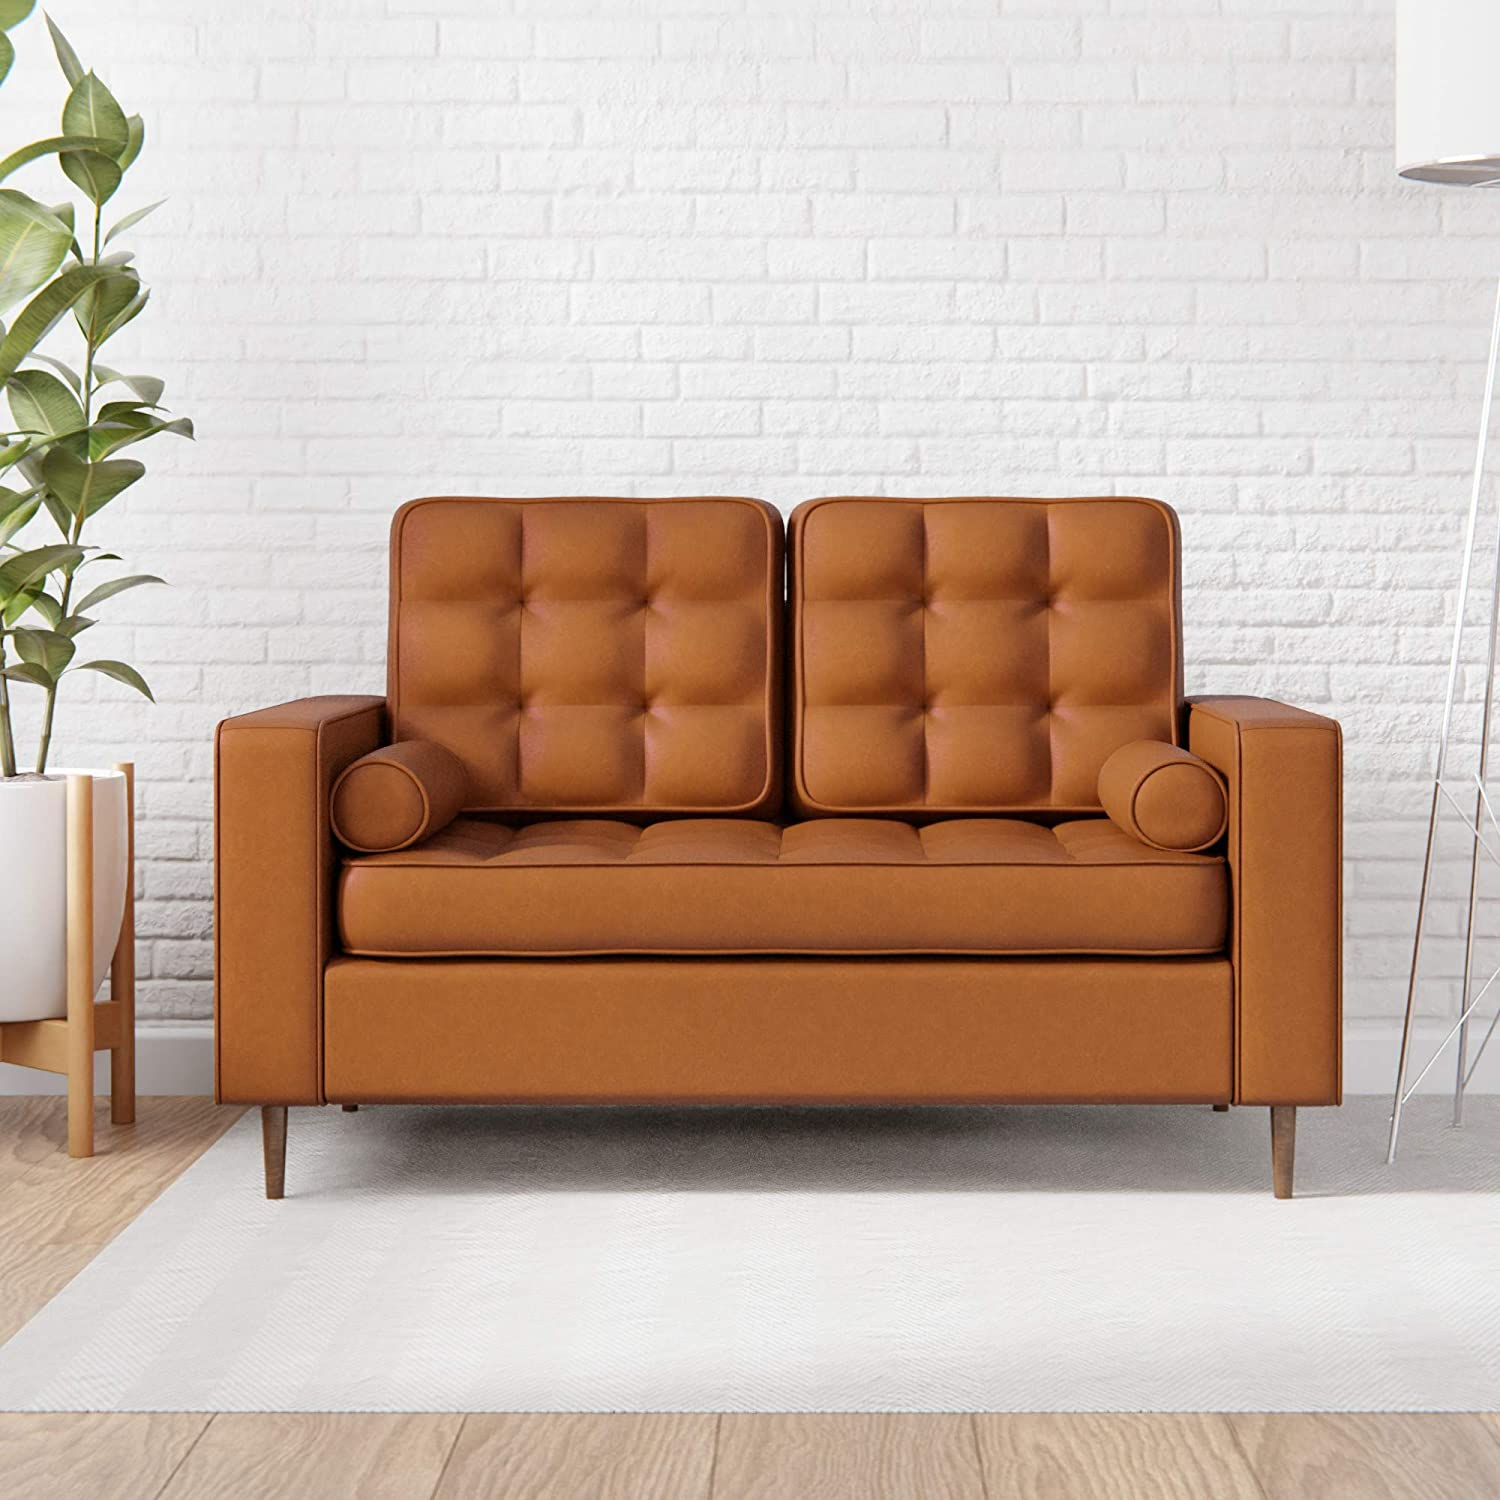 Edenbrook Lynnwood Upholstered Loveseat with Square Arms and Tufting-Bolster Throw Pillows Included, Faux Camel